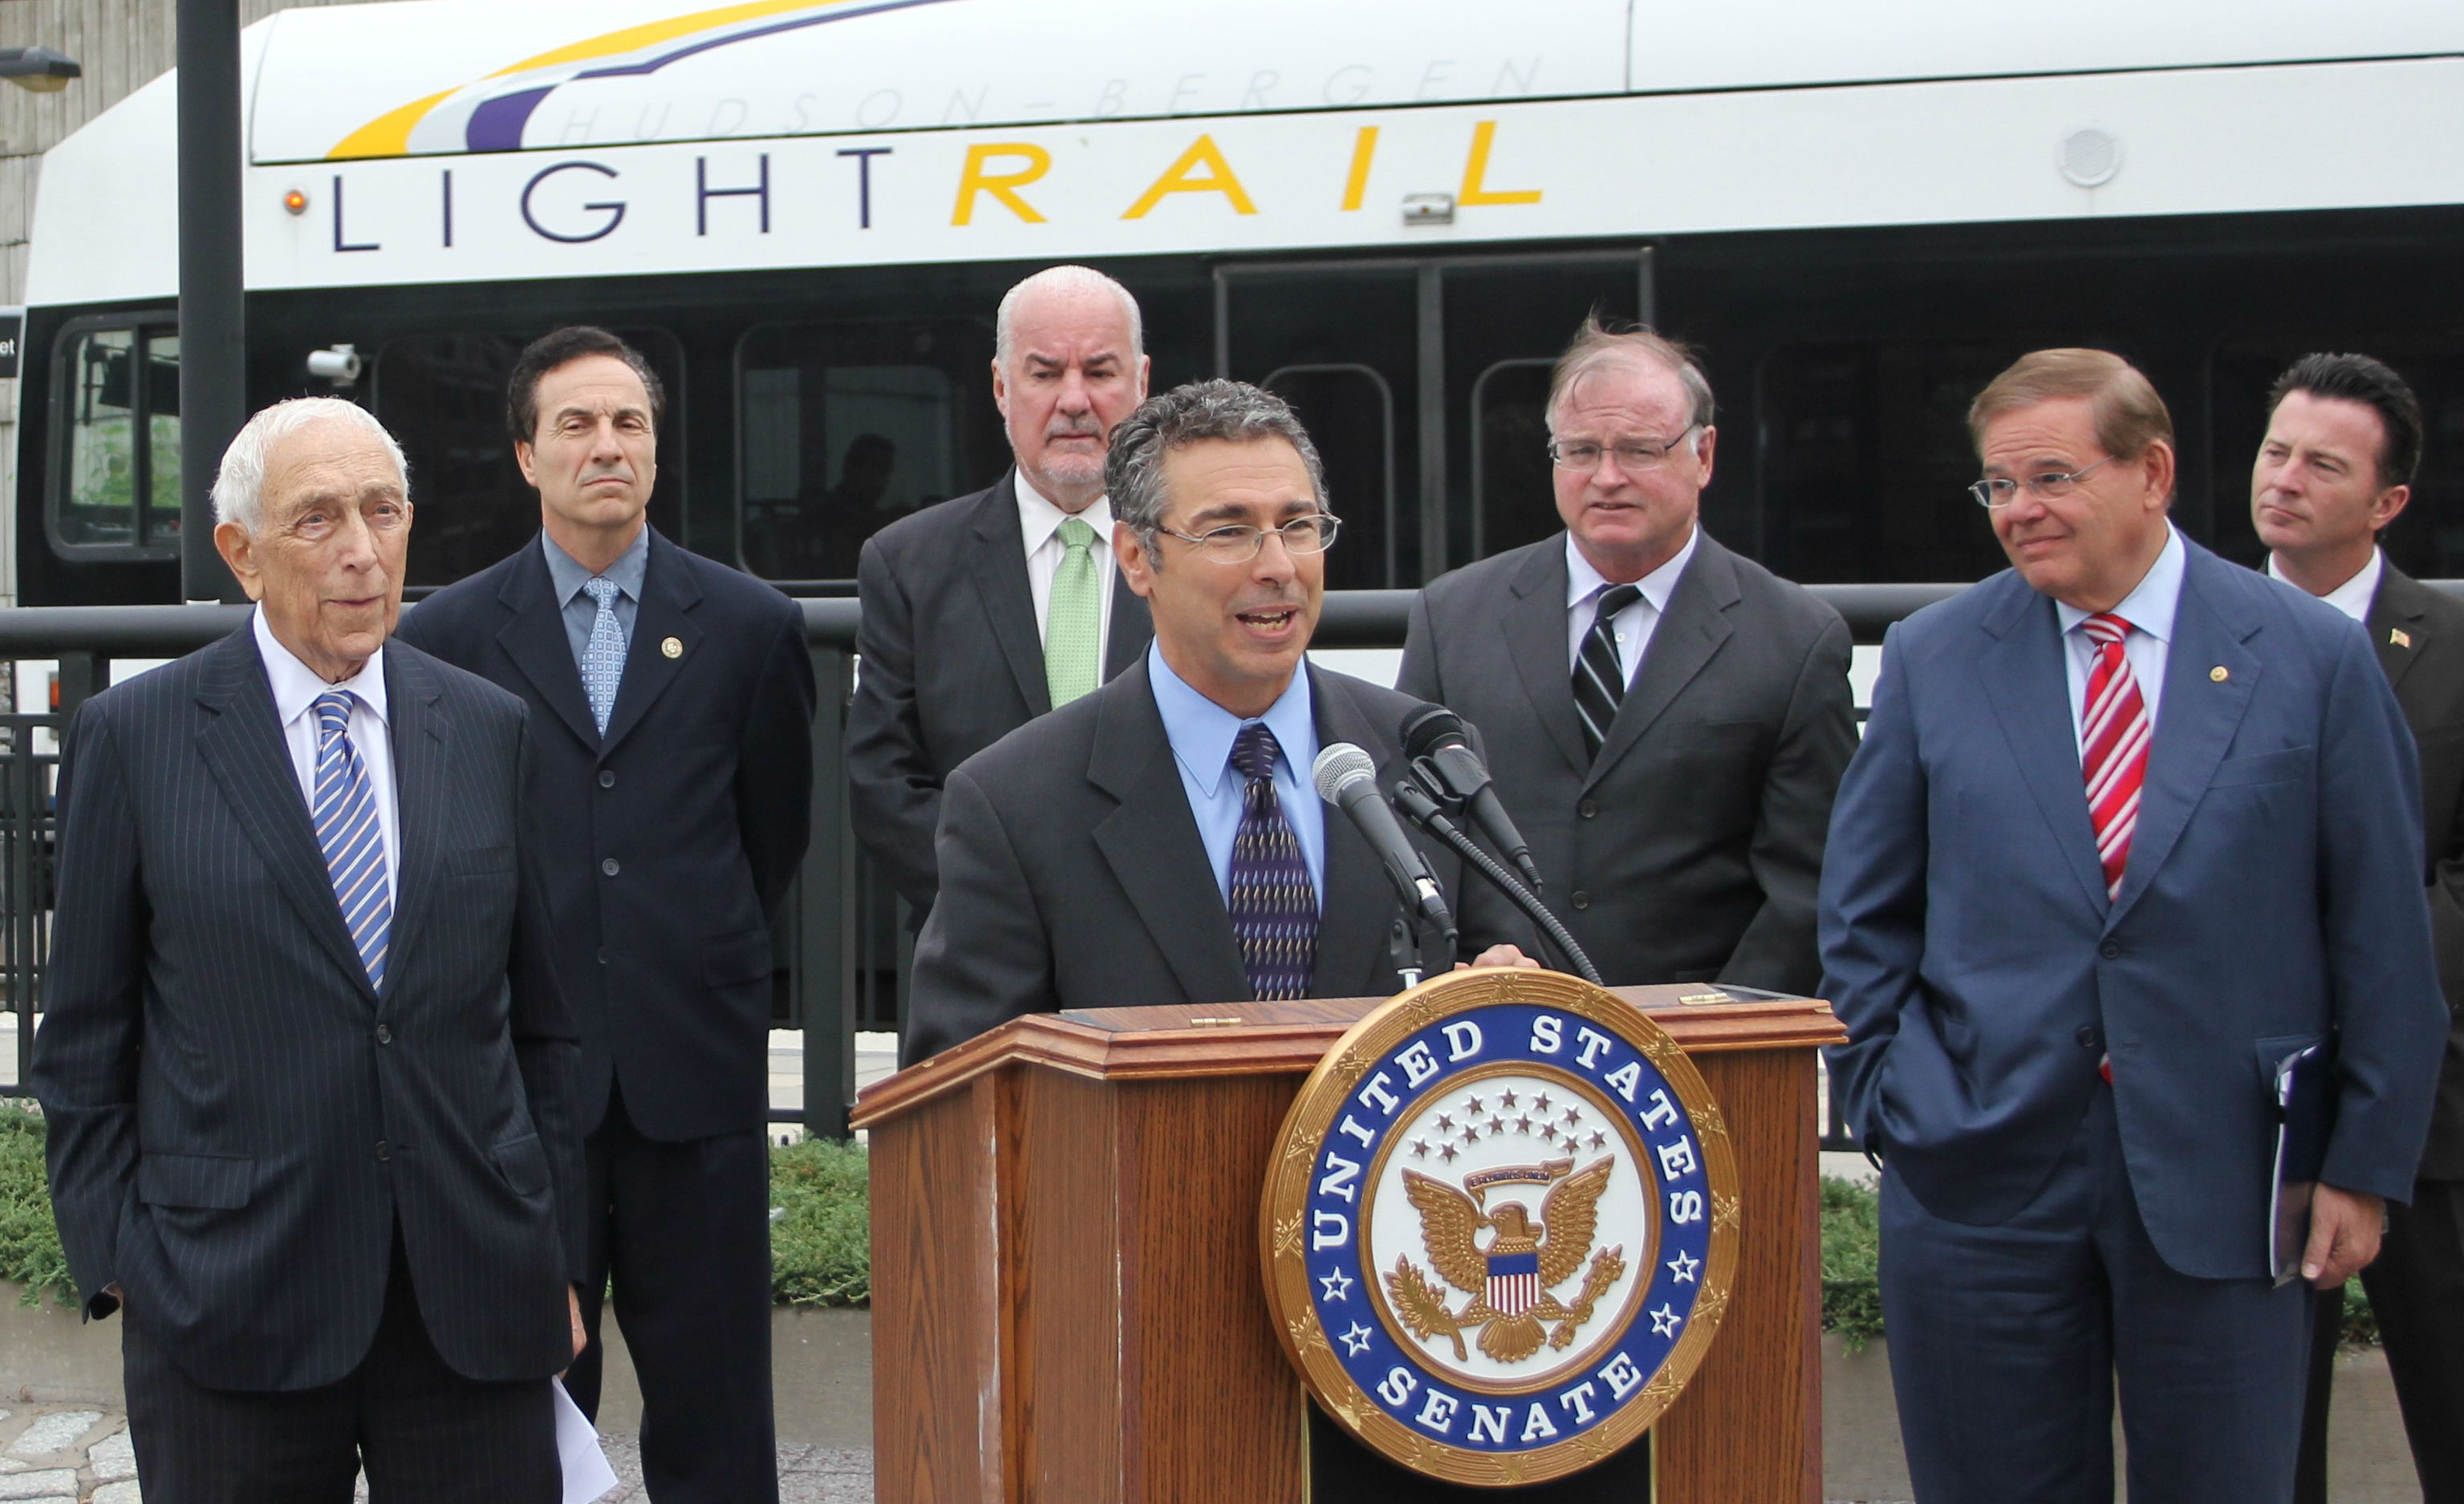 New Jersey Future Executive Director Peter Kasabach at the press conference announcing receipt of a $400,000 grant to examine the possibility of building a new light rail station in Jersey City.